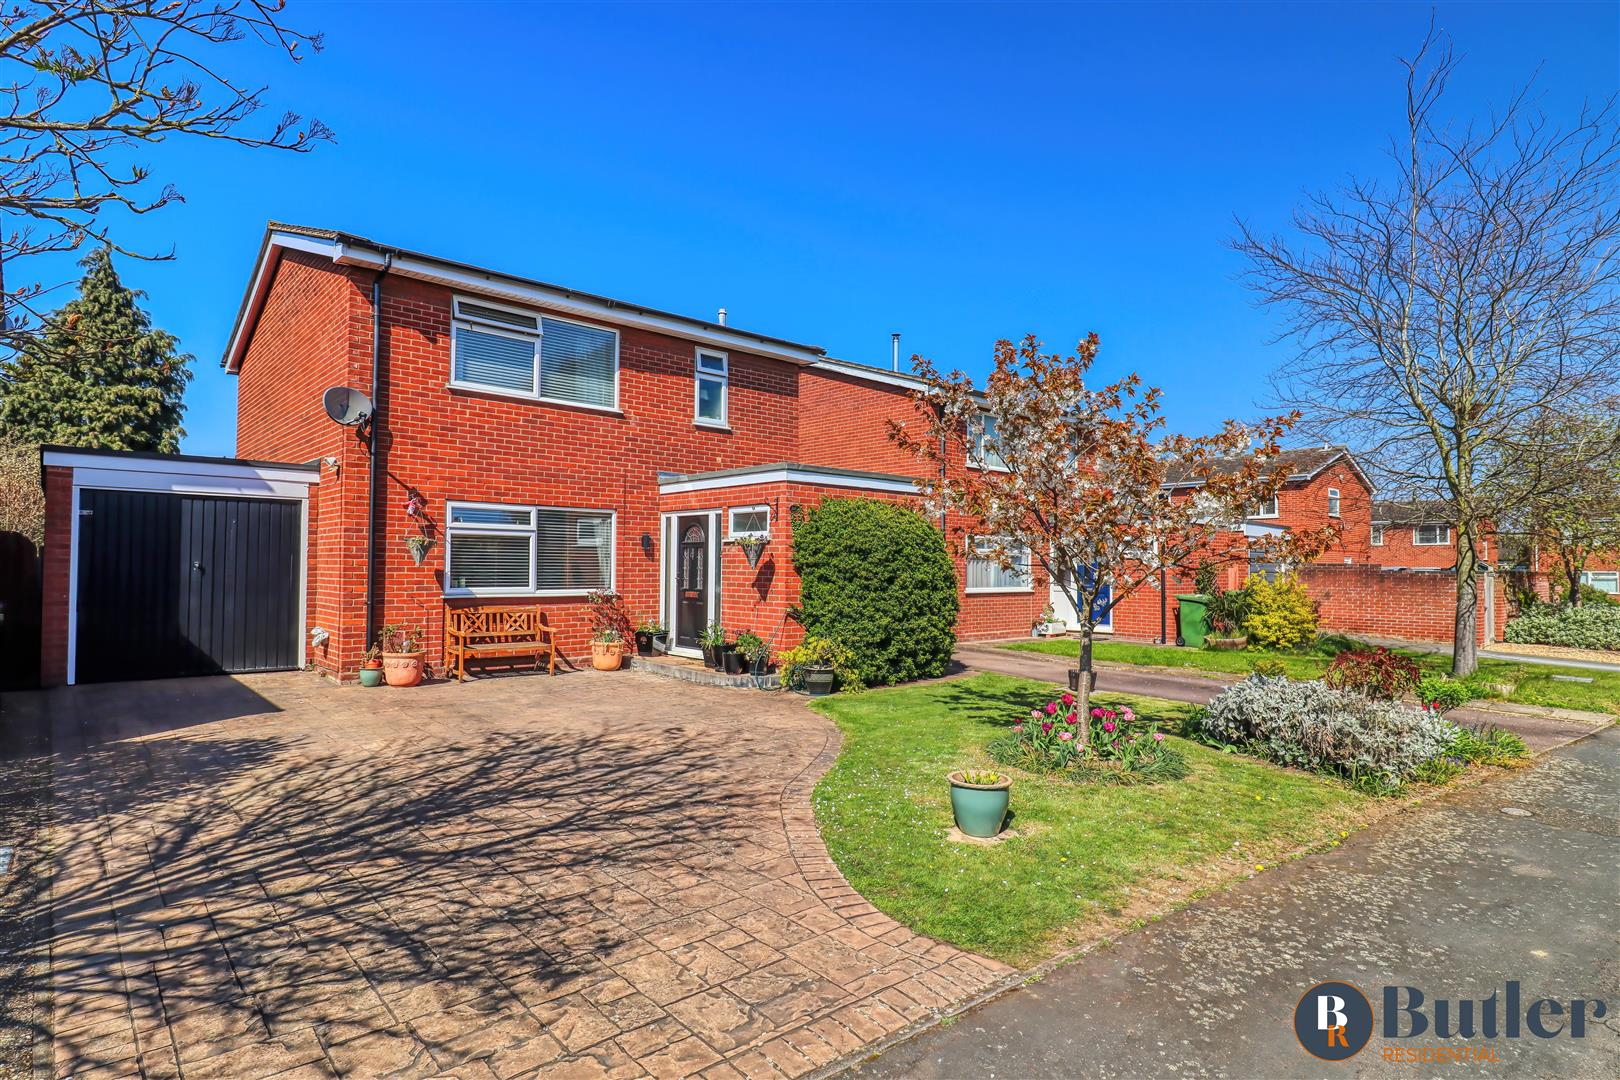 3 bed detached house for sale in The Osiers, St. Neots, PE19